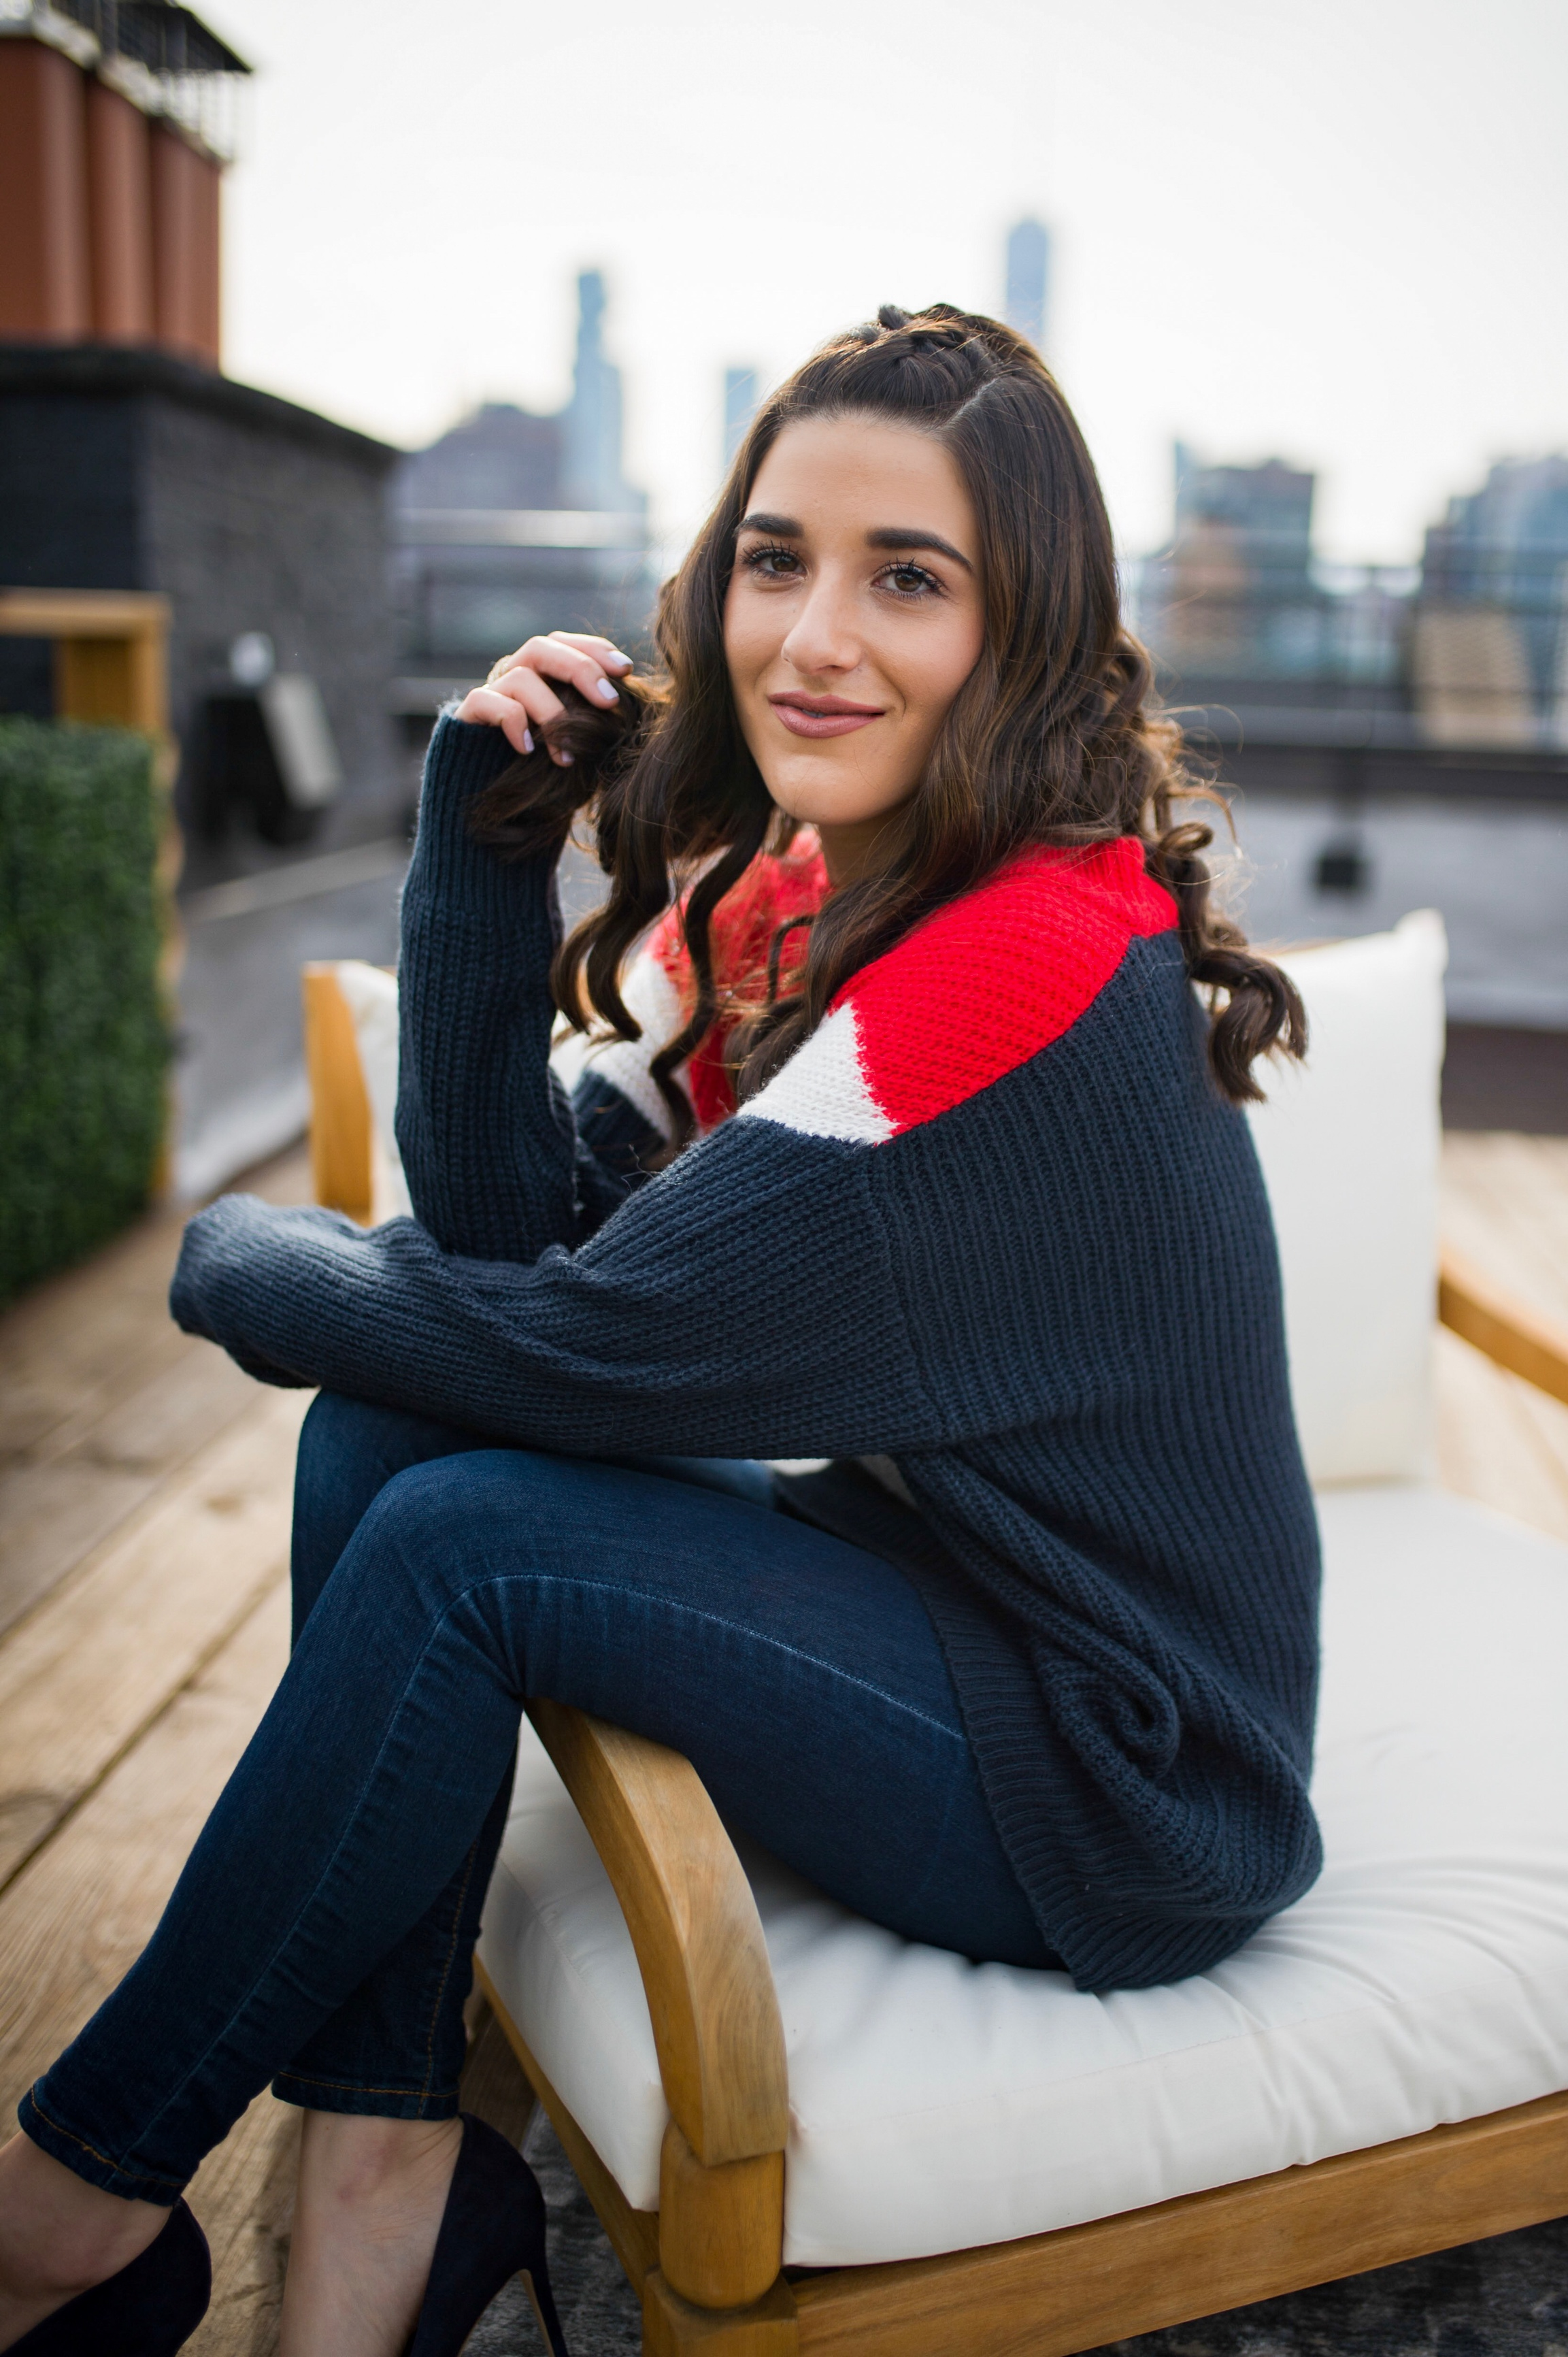 Advice For The Micro-influencer Oversized Sweater Navy Heels Esther Santer Fashion Blog NYC Street Style Blogger Outfit OOTD Trendy Shopping Subtle Balayage Highlights Hair Jeans Sally Hershberger Girl Chic How To Wear Women Red White Blue Winter Fall.jpg